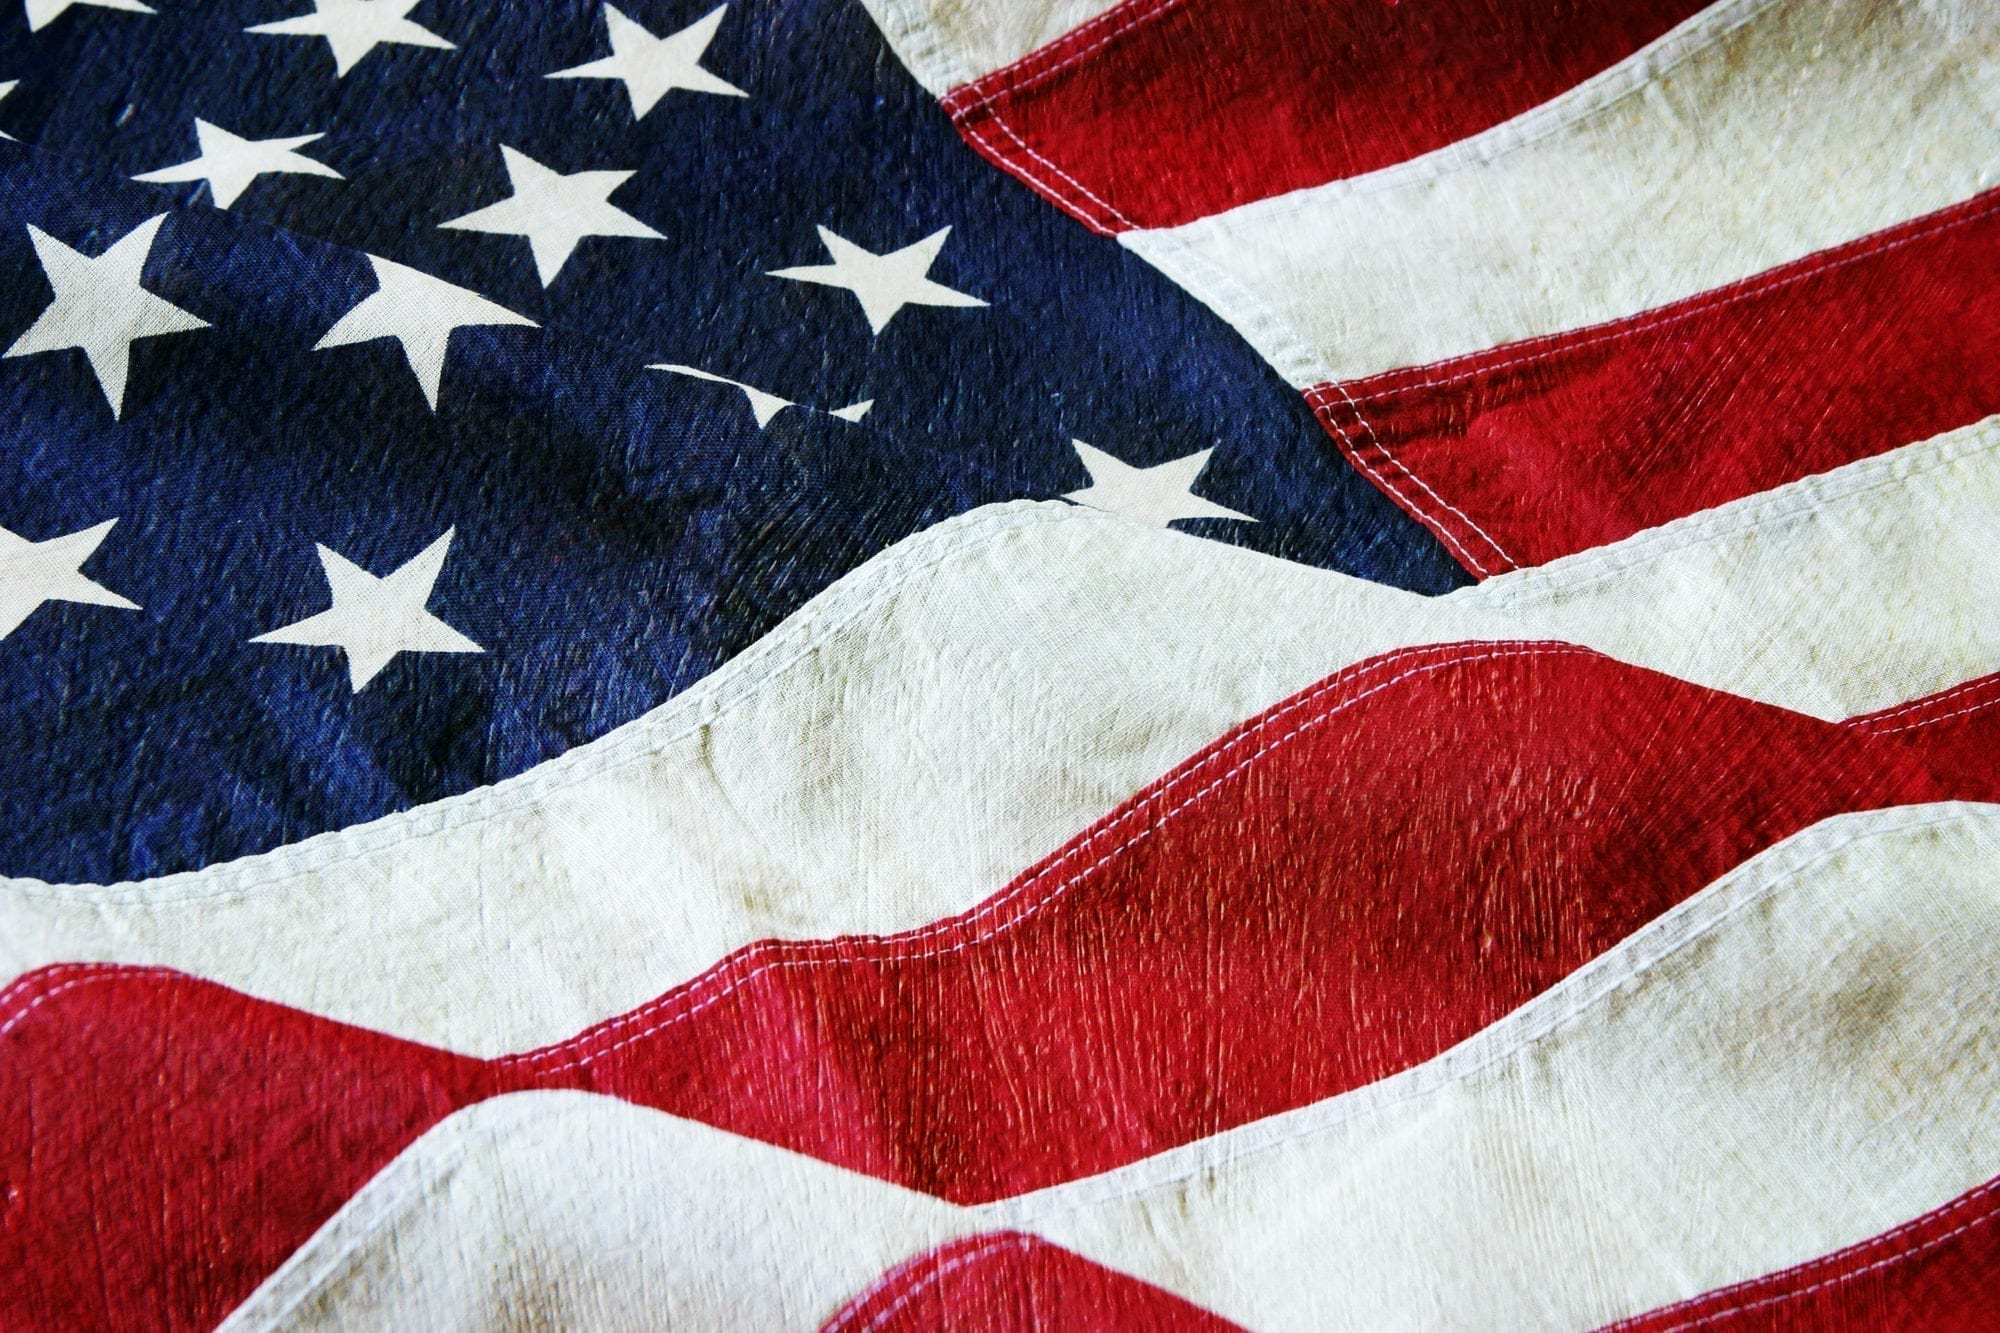 american-flag-with-canvas-texture.jpg